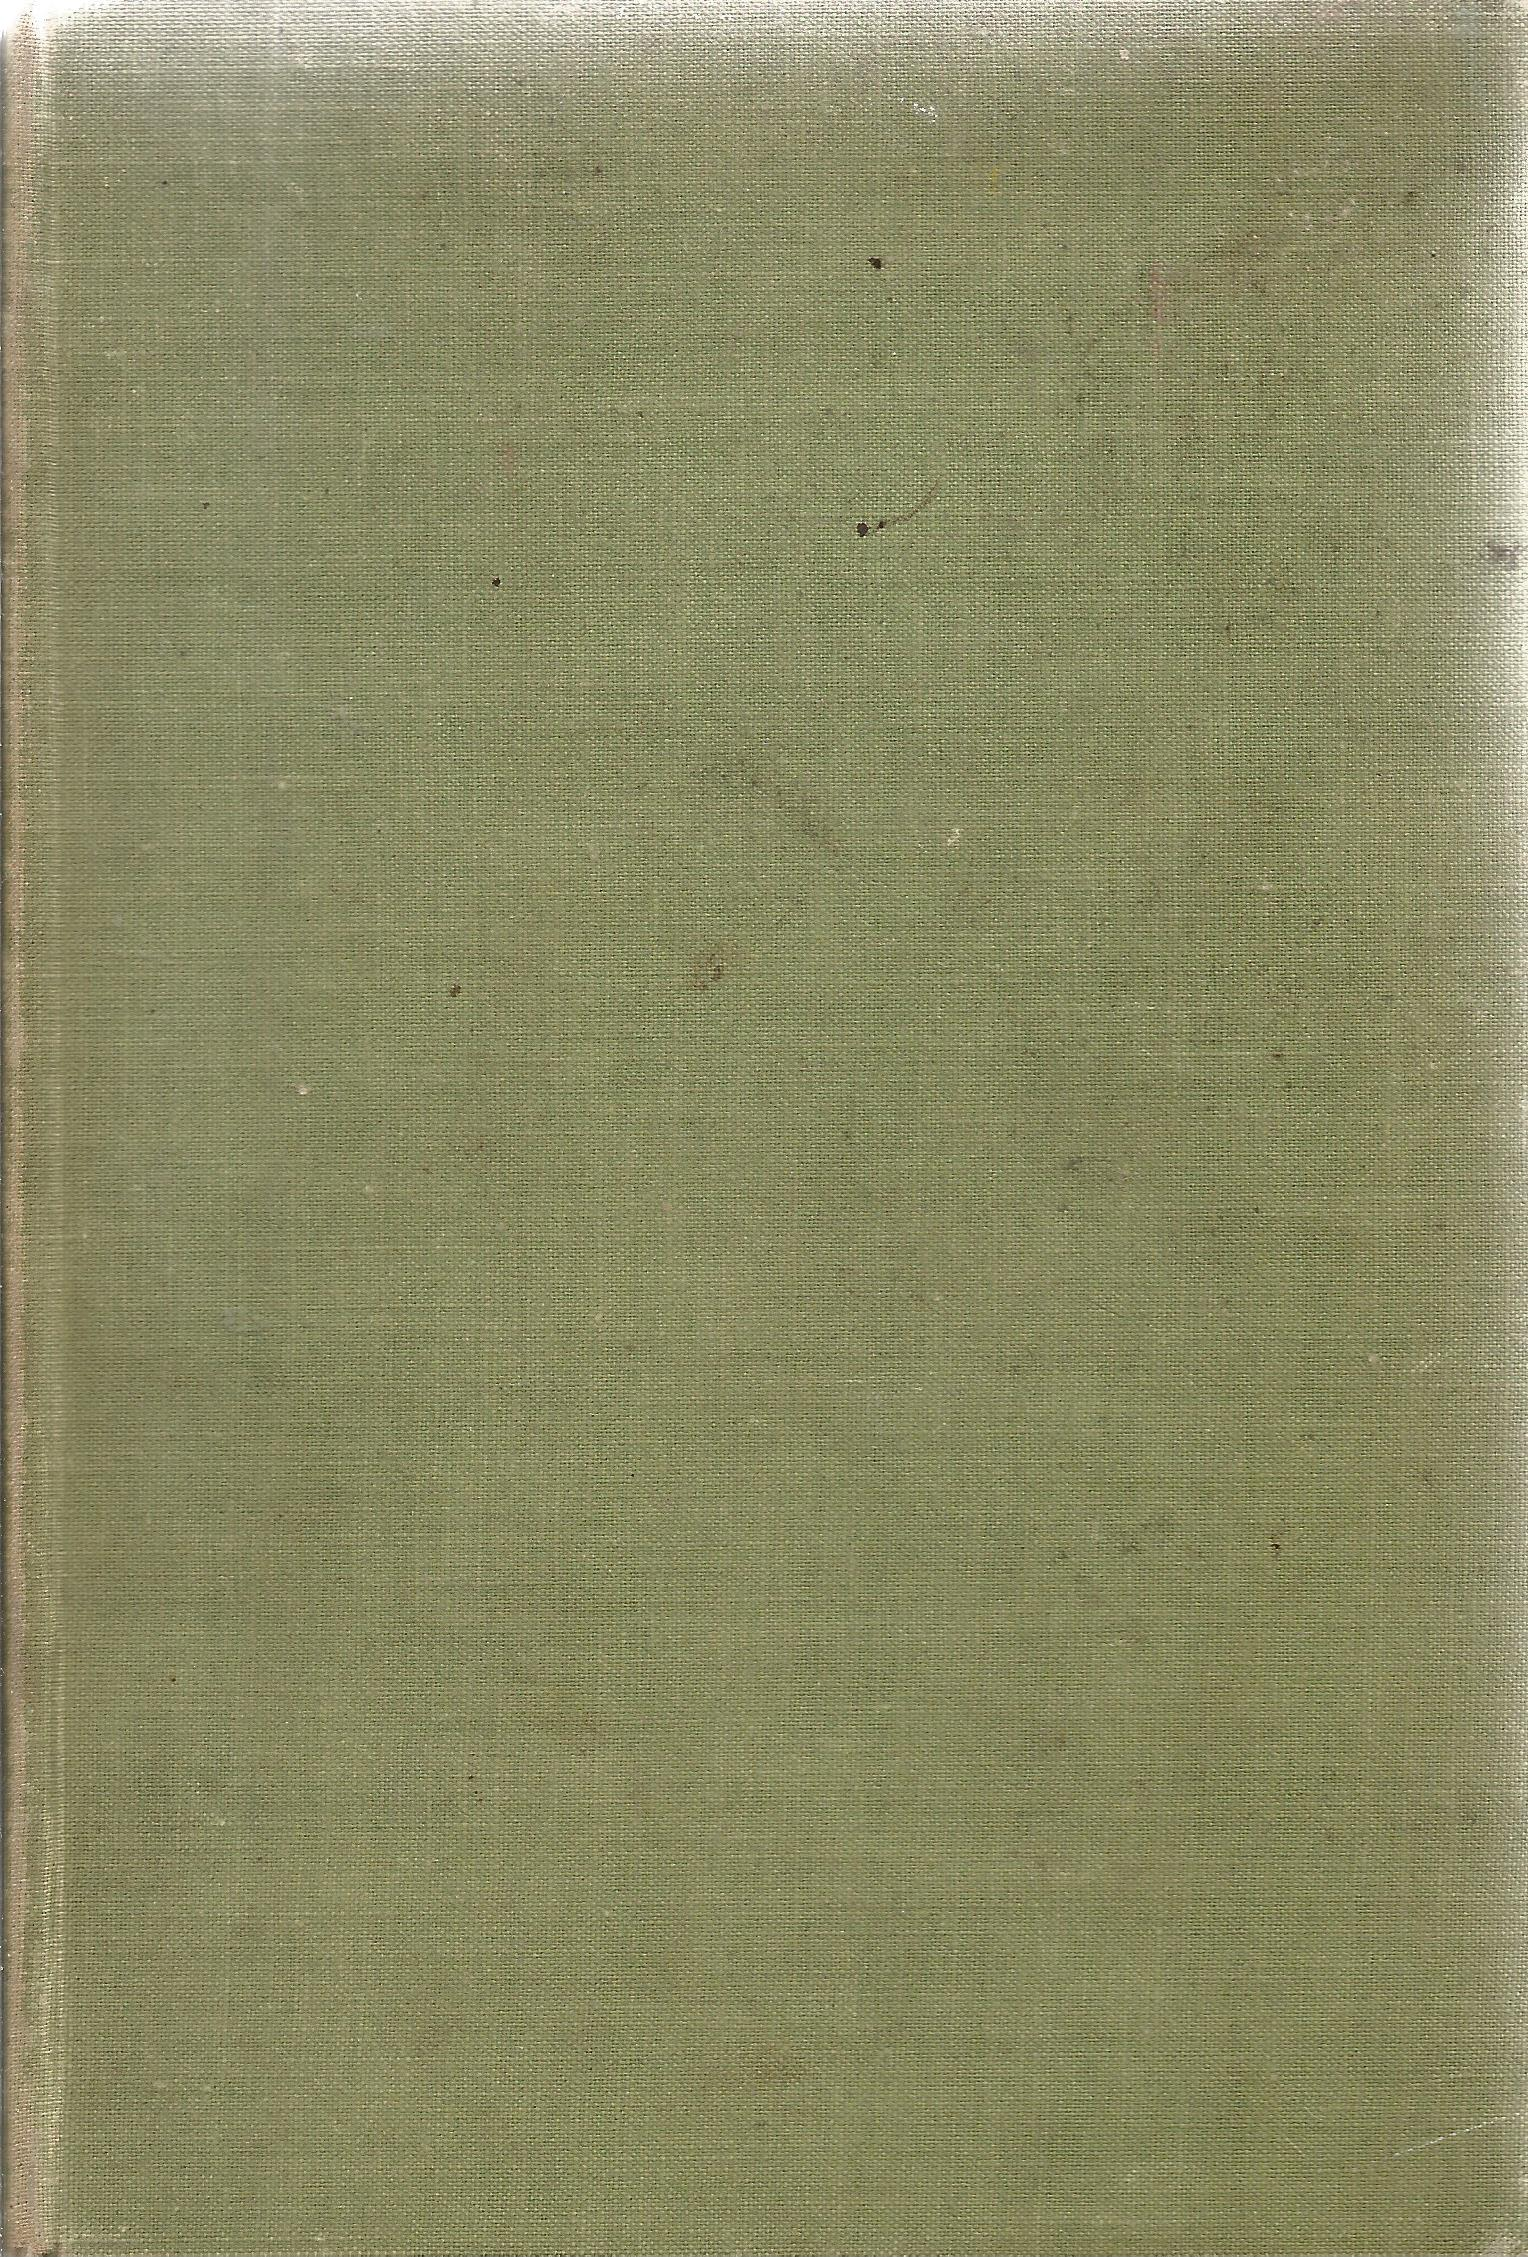 2 Hardback Books A Book of Grey Owl by E E Reynolds & Grey Owl and the Beaver by Harper Cory First - Image 4 of 6